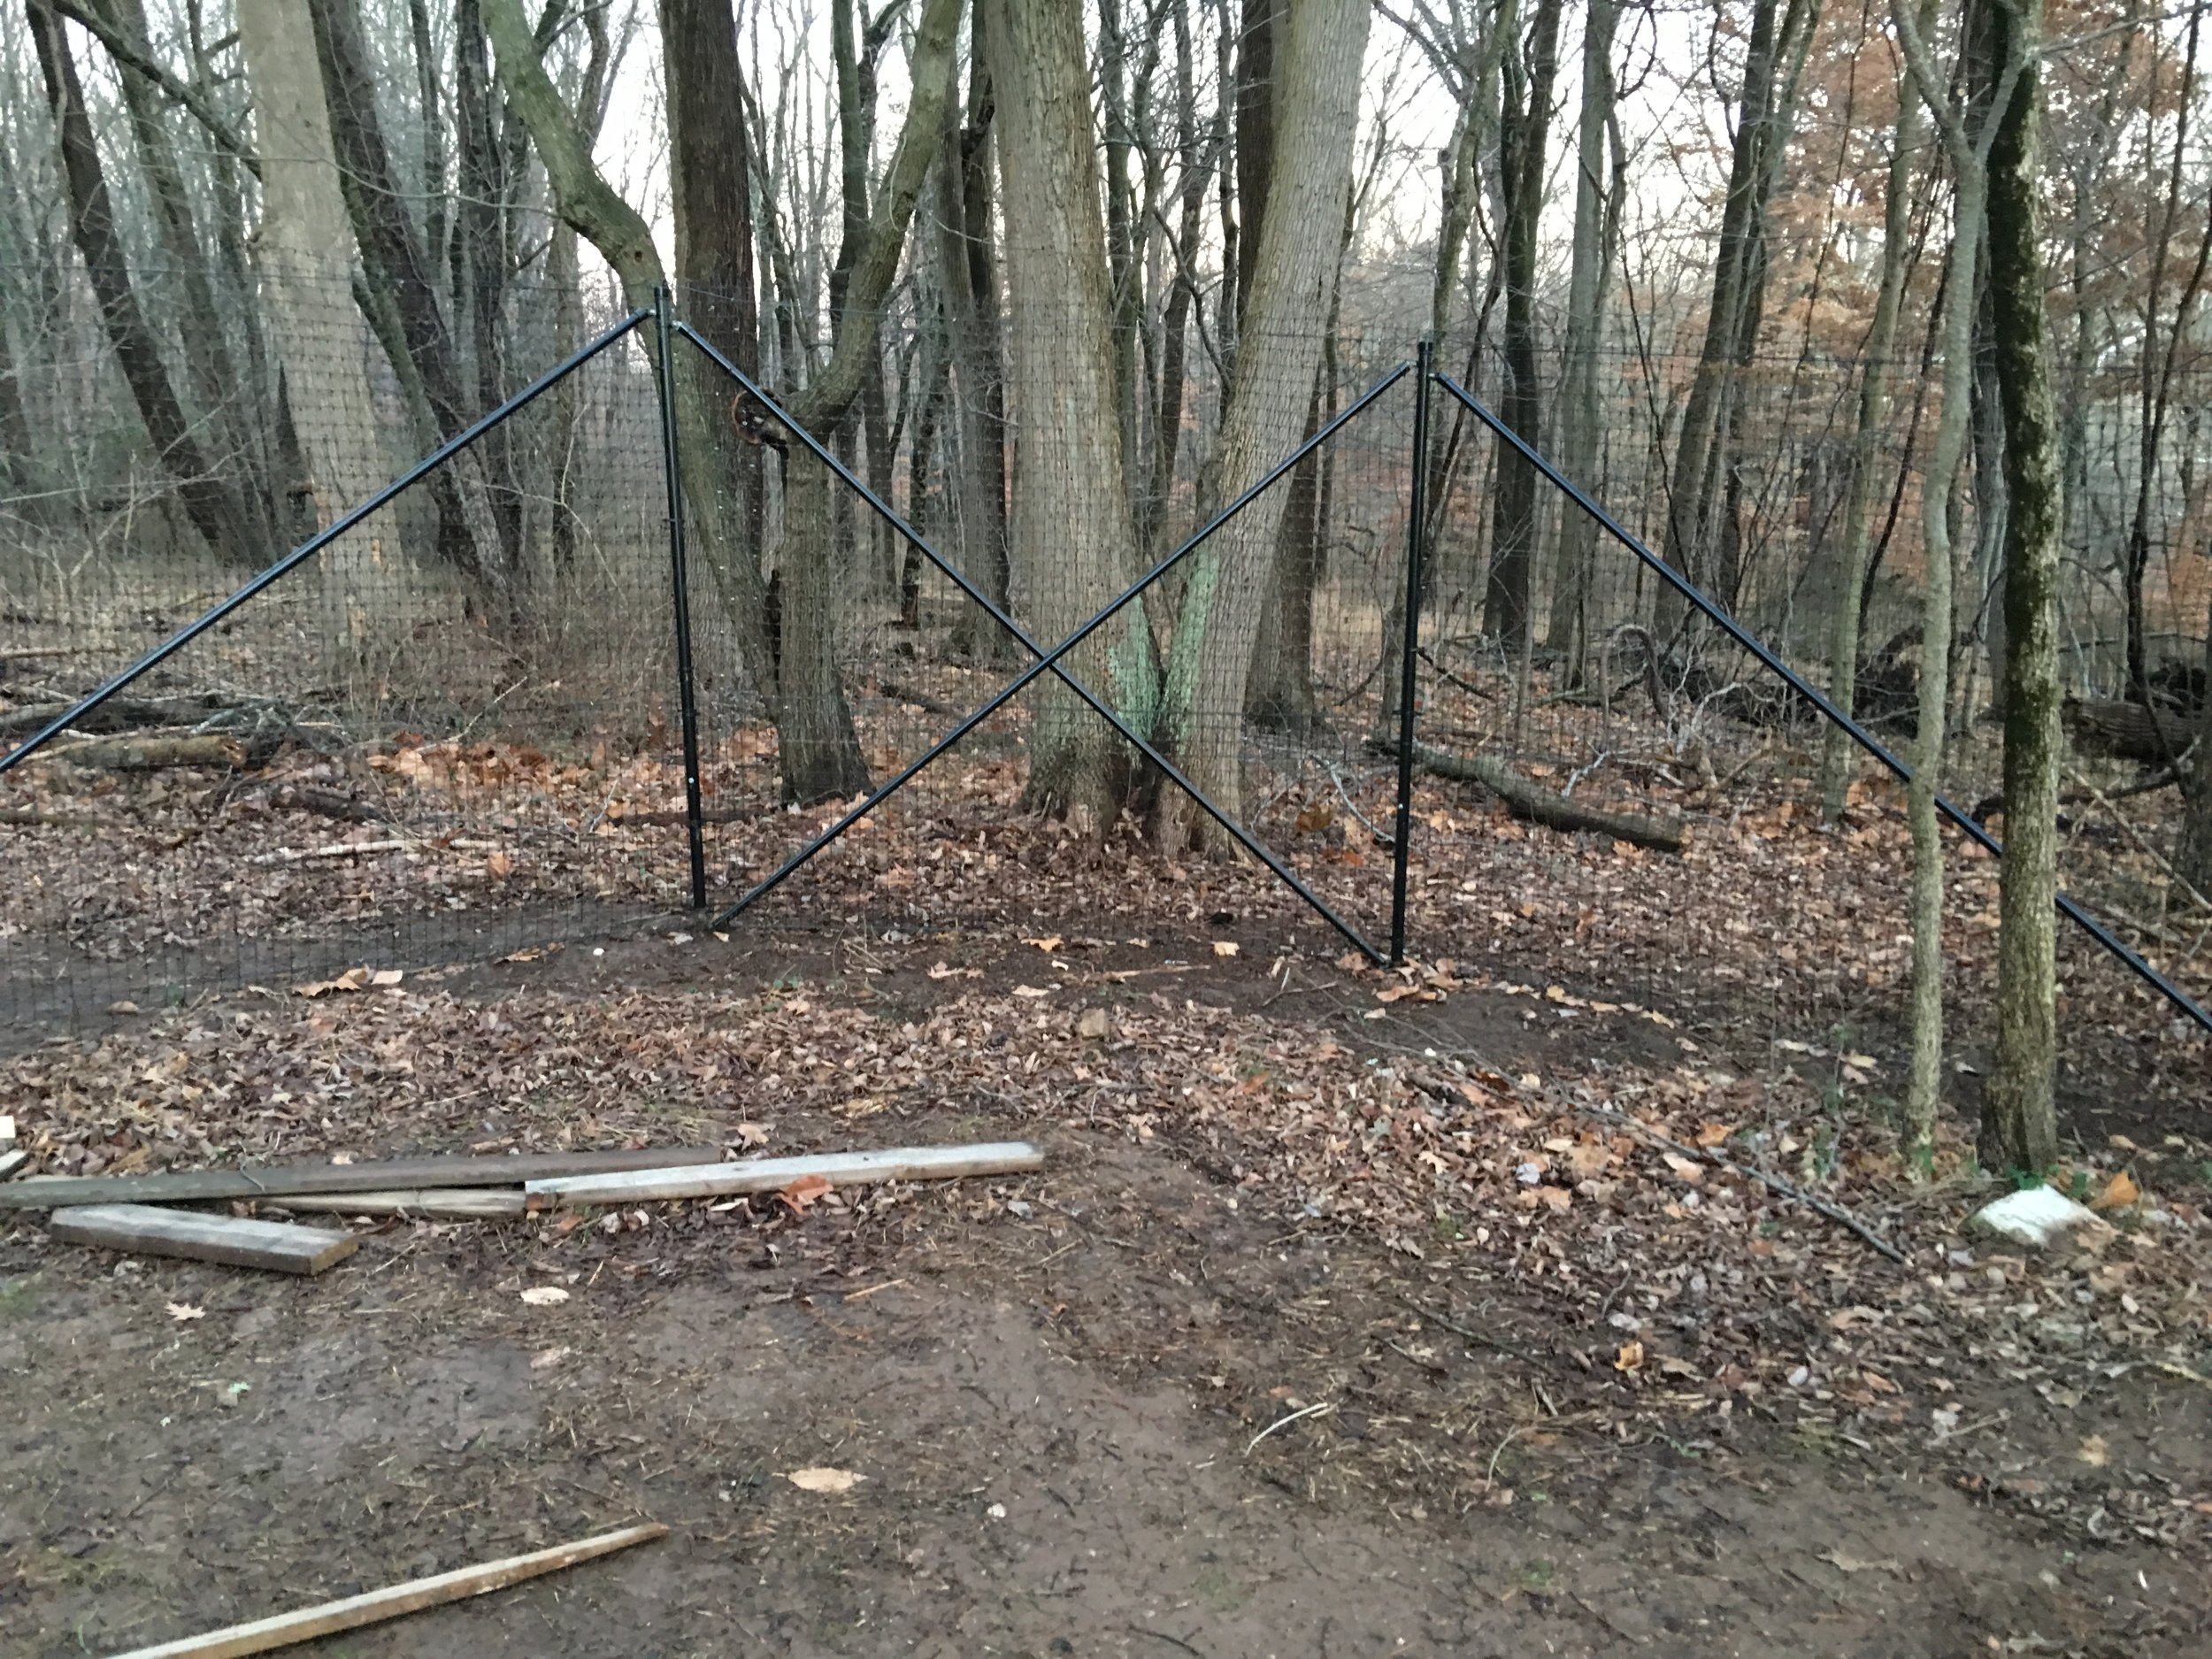 Deer Fencing installed using four brace pipe to ensure fence doesn't pull in. Deer fencing installed in Northeastern Philadelphia.